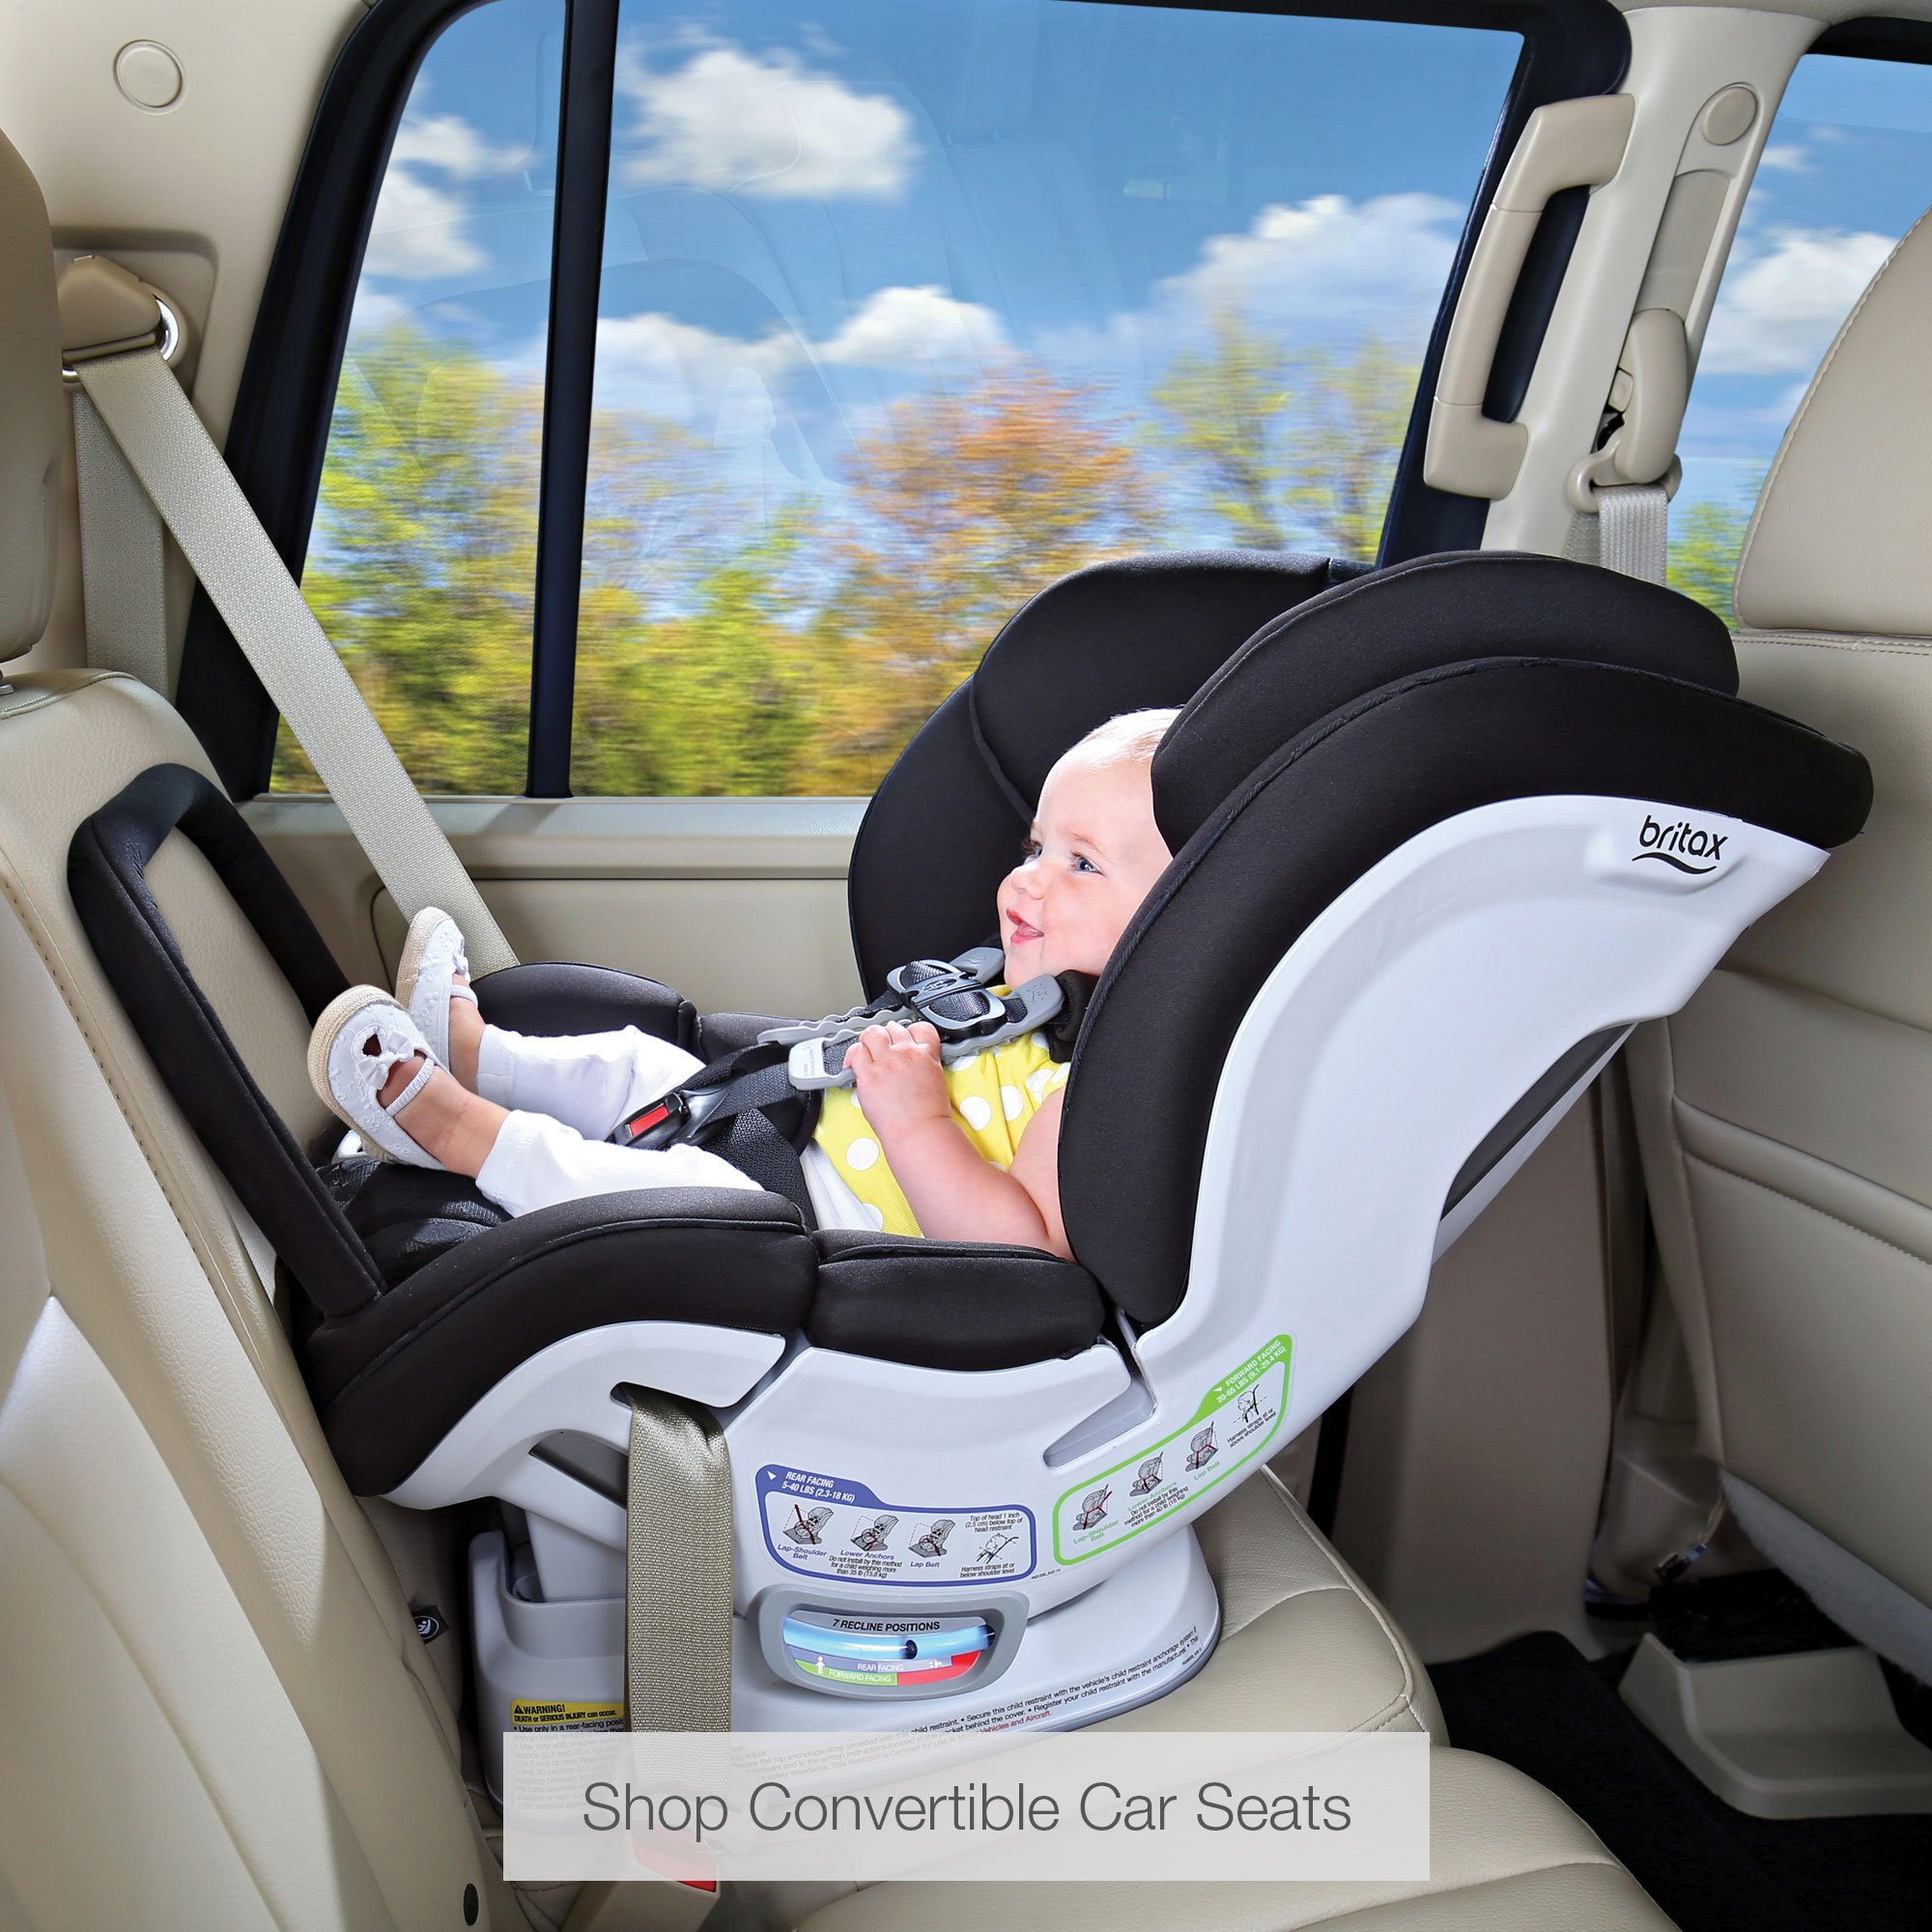 Shop convertible car seats